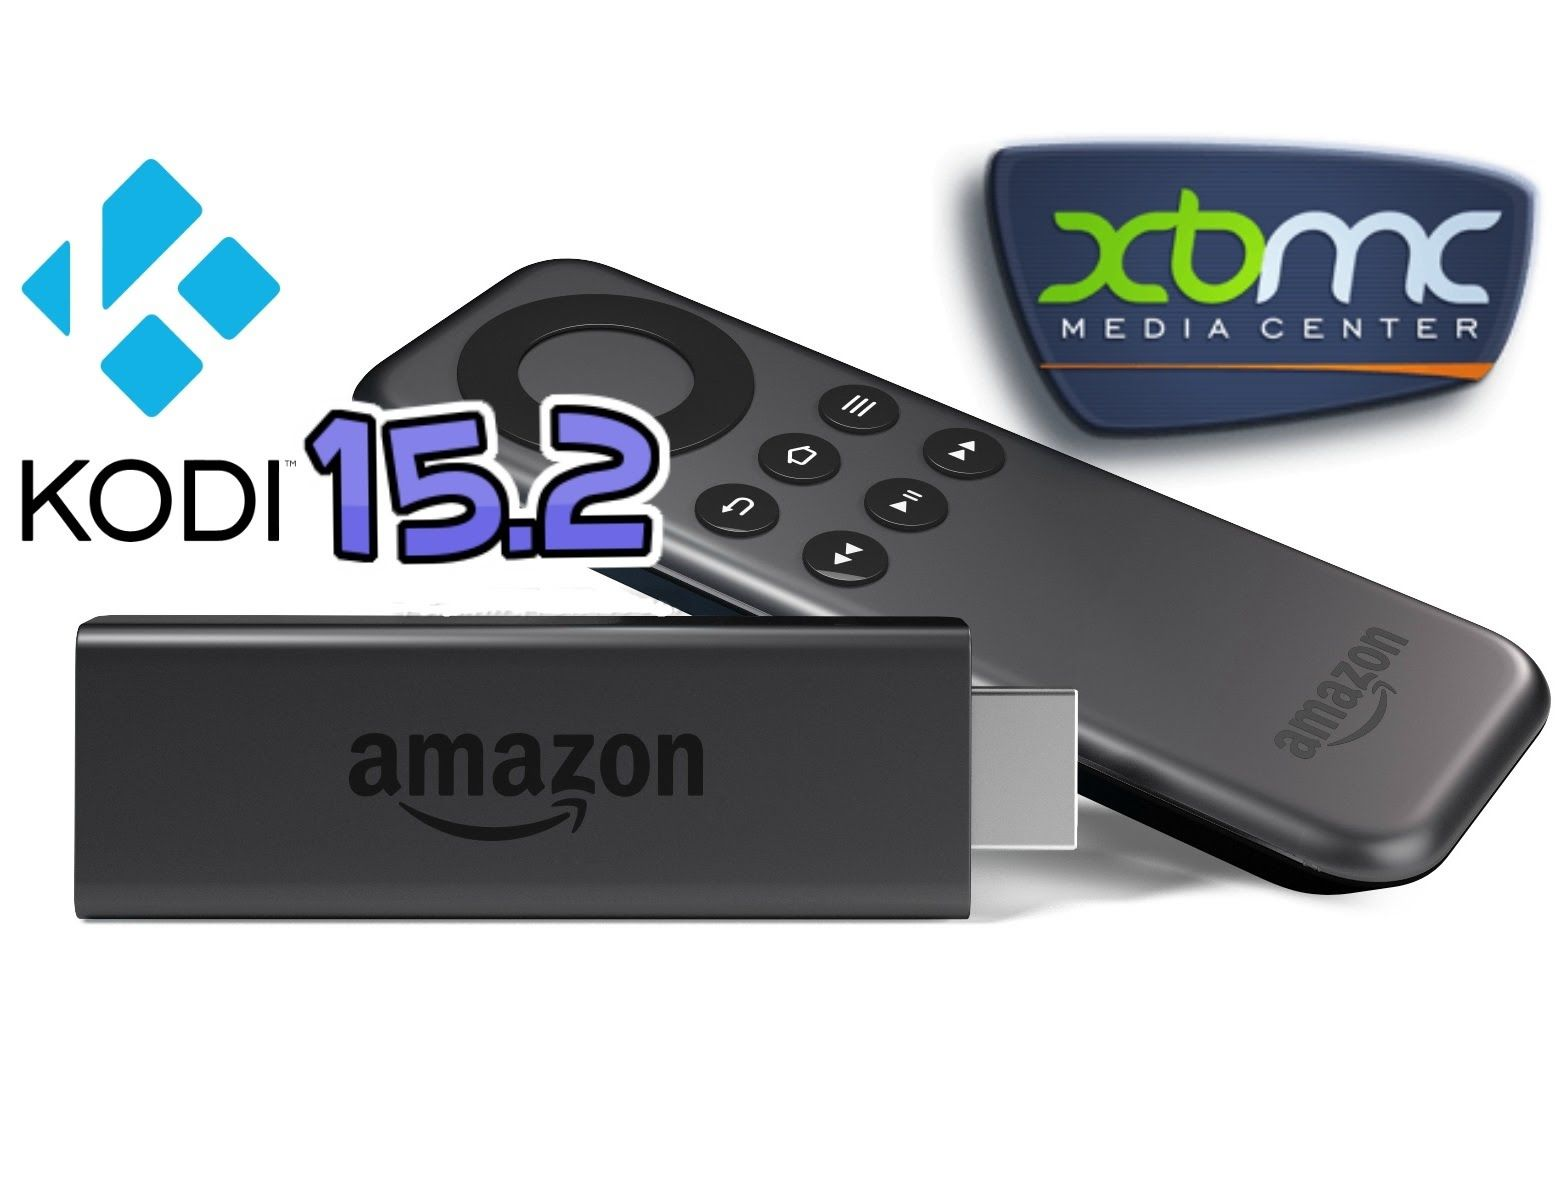 Amazon Fire Tv Stick How To Install Kodi 15 2 With